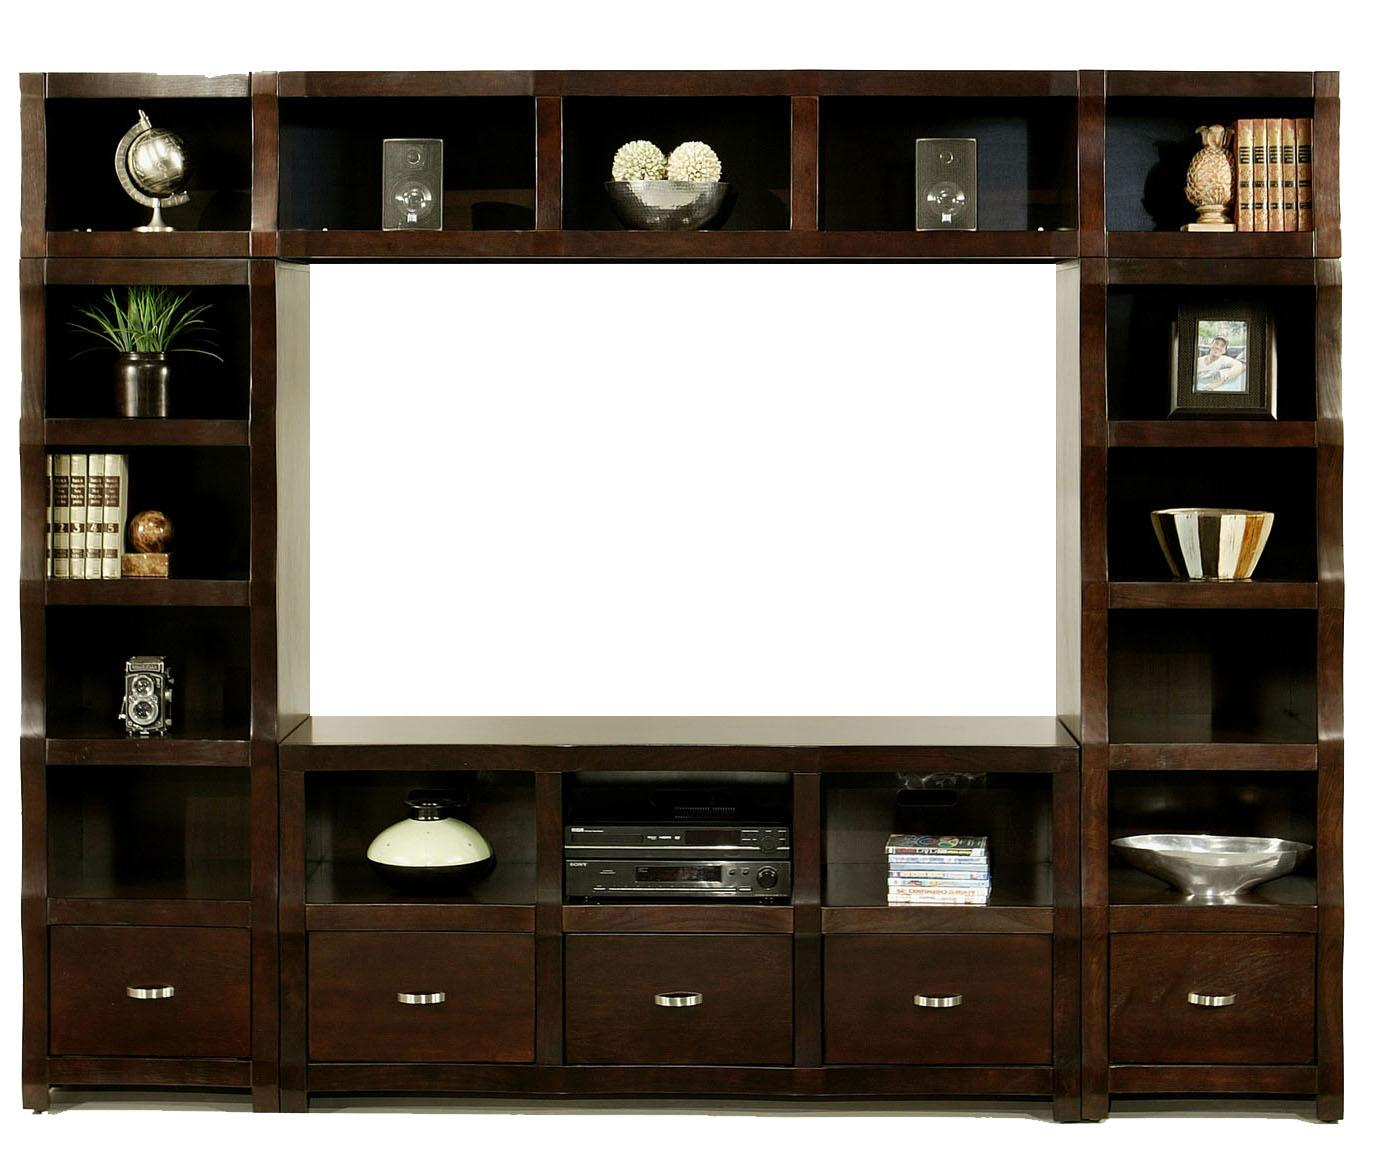 Morris Home Furnishings Cainhill Cainhill 4 Piece Wall Unit - Item Number: 6076+6078+6049+6086